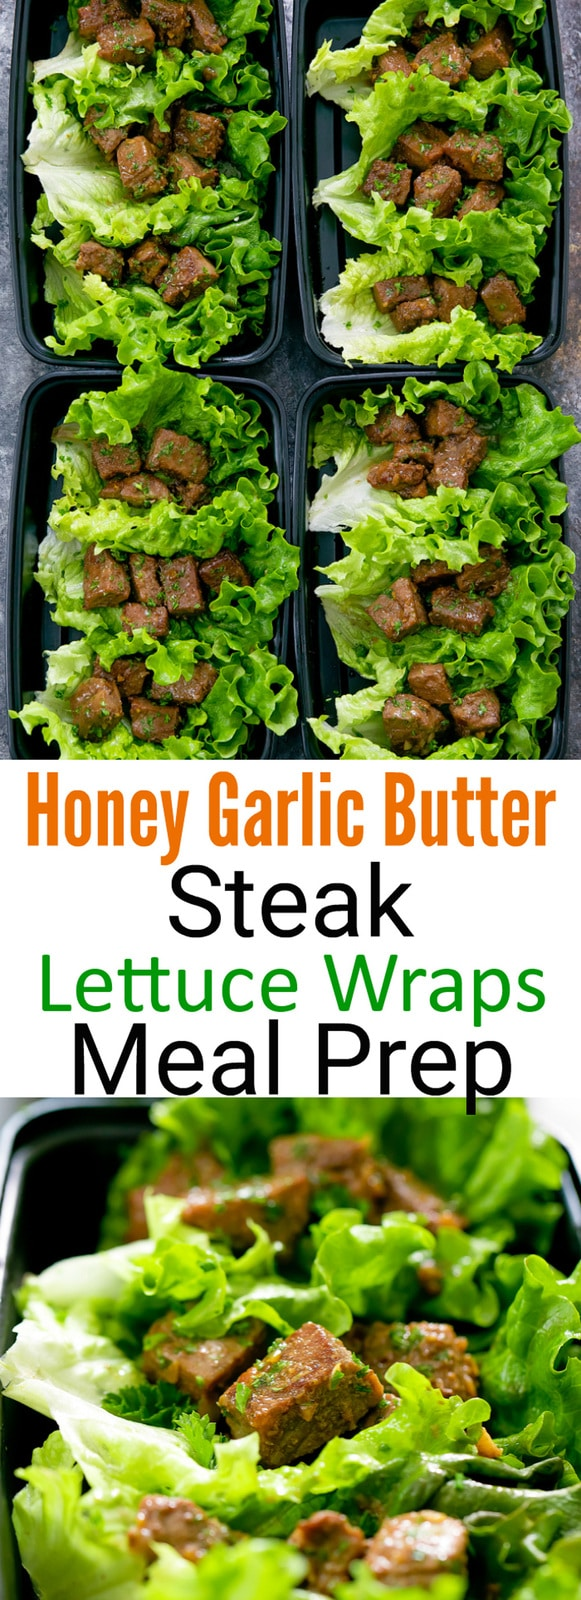 Honey Garlic Butter Steak Lettuce Wraps Meal Prep. Tender, juicy steak bites coated in the most flavorful honey garlic butter sauce. So easy and delicious.